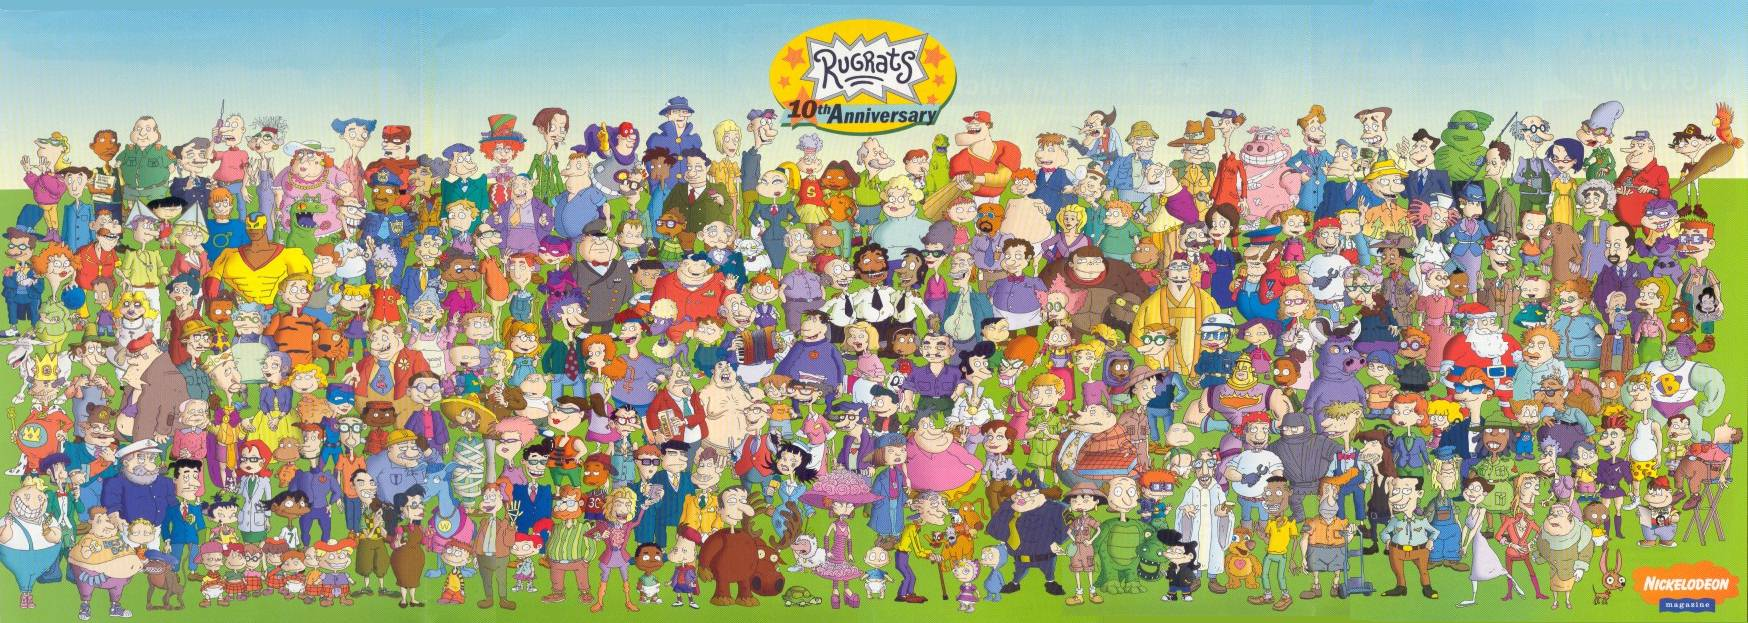 Image - Rugrats 10th Anniversary Cast Poster.jpg | Rugrats Wiki ...